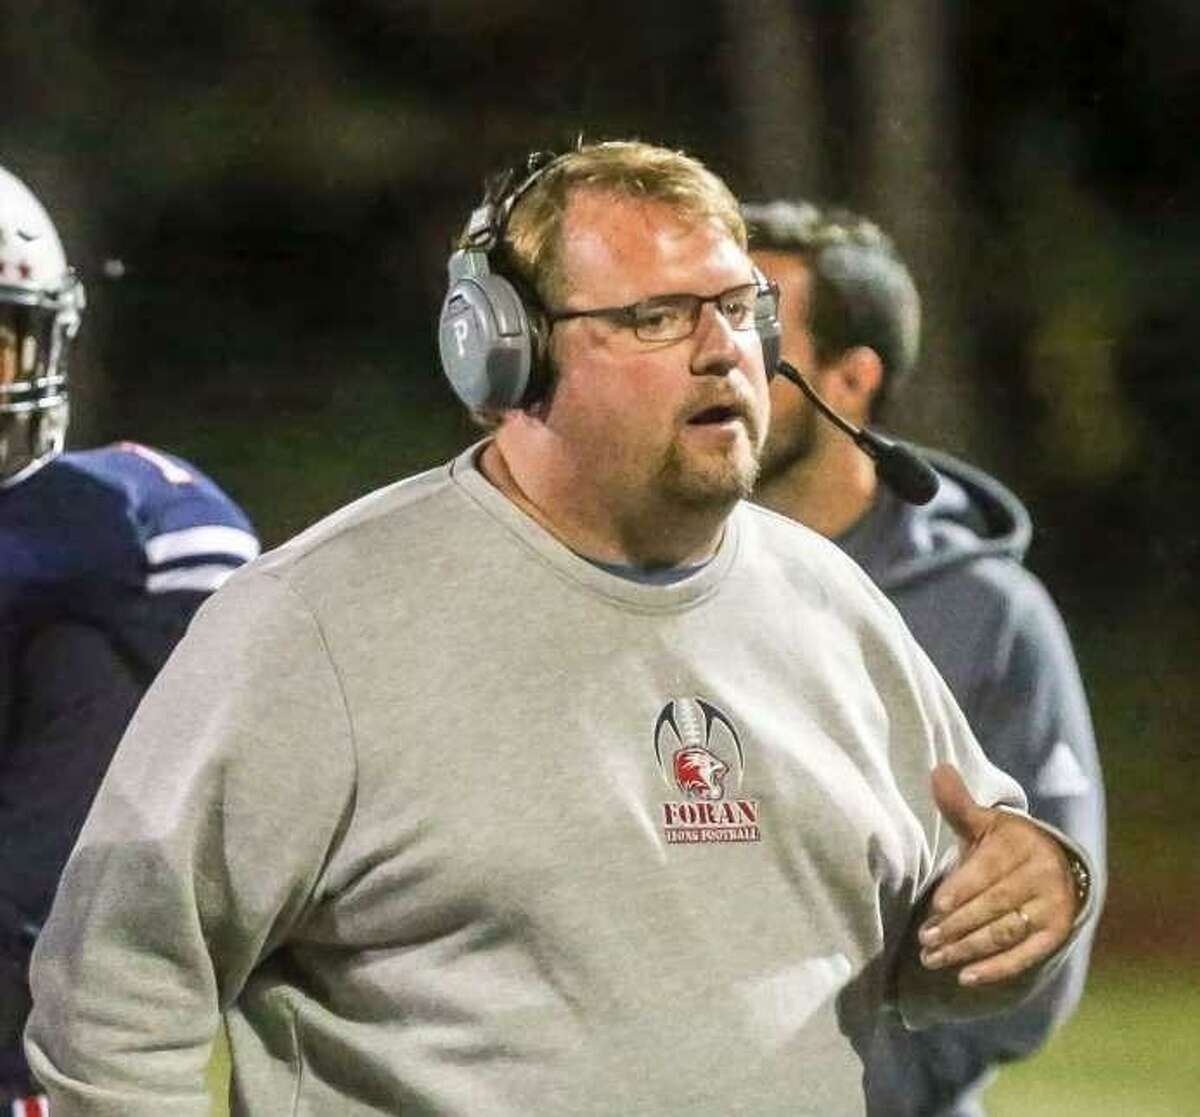 Football coach Tom Drew took his Foran team through OTA's last week. The Lions will condition this week. Contact drills begin on Saturday.